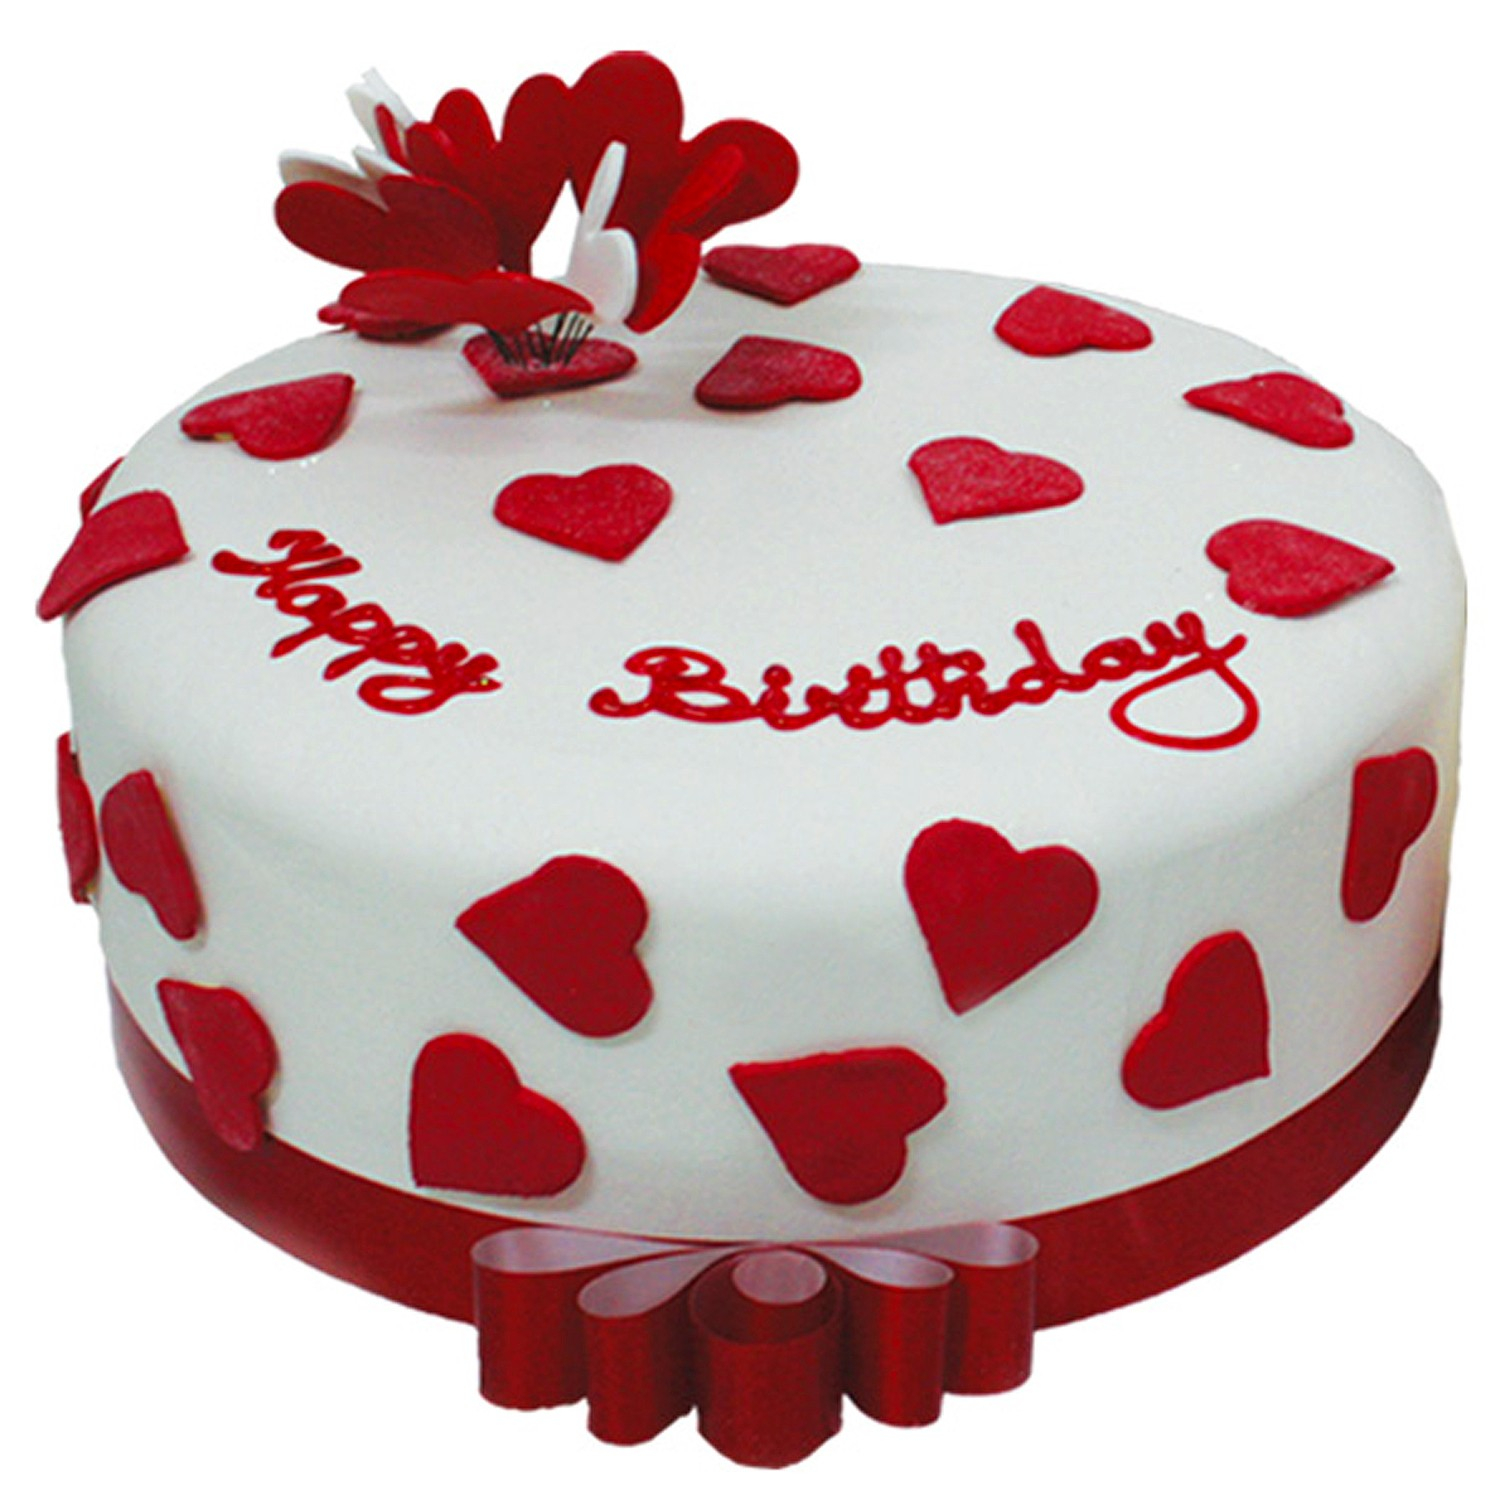 Birthday Cake Images Free Download Free Birthday Cake Images Download Free Clip Art Free Clip Art On